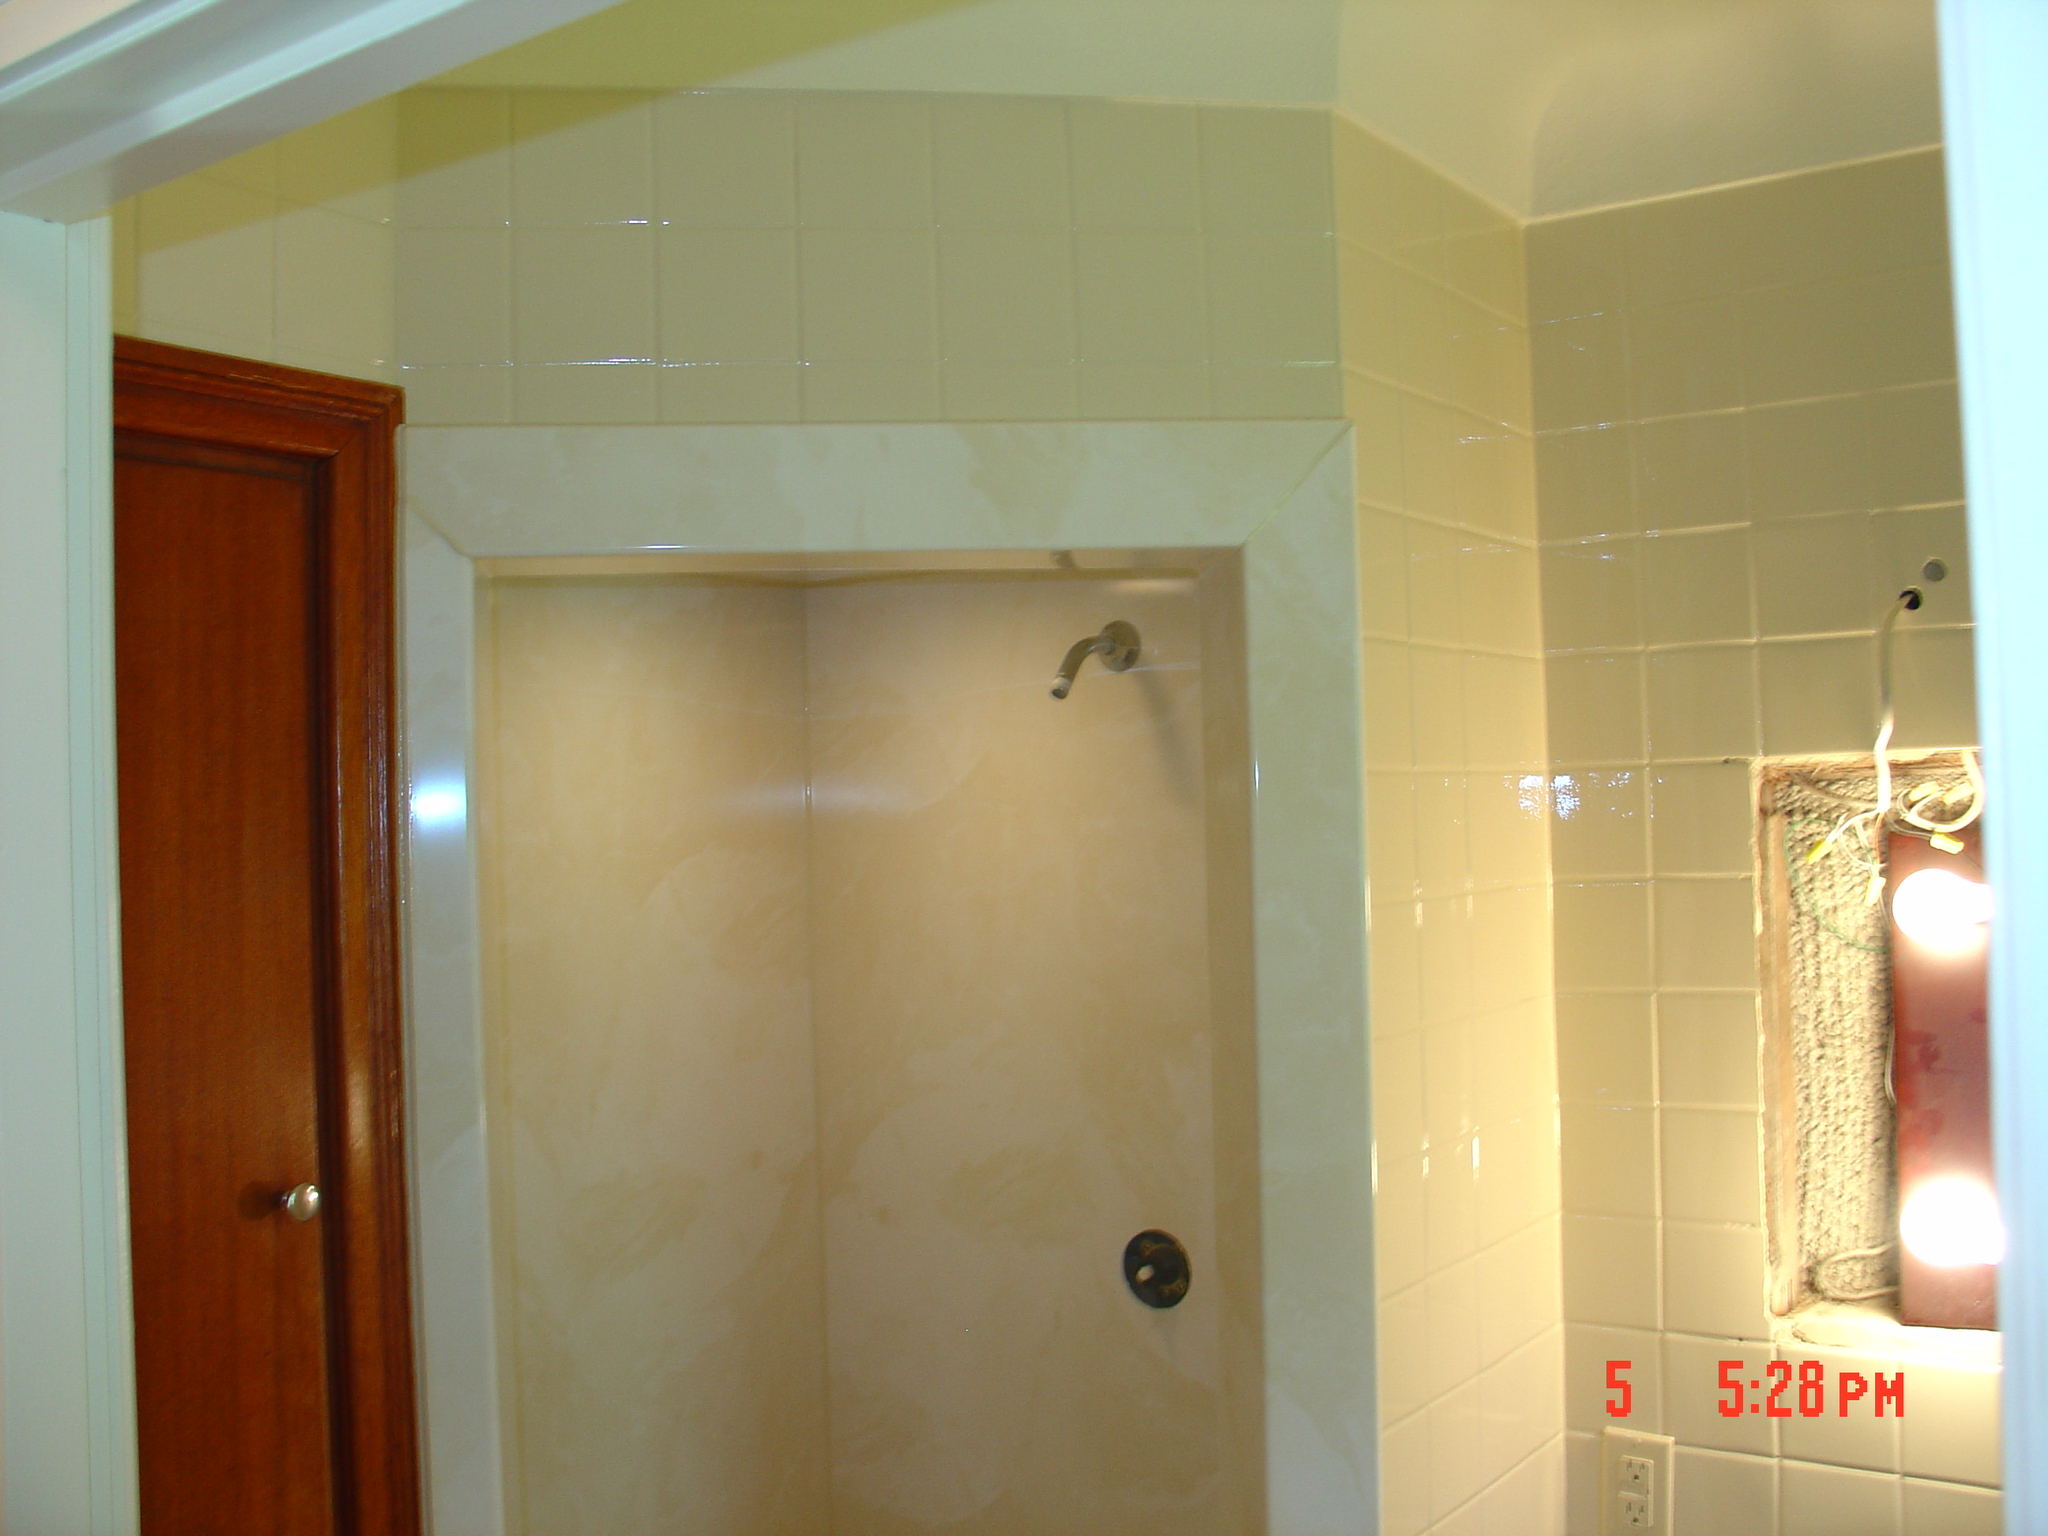 Bathtub and Shower liner Samples | St Louis, MO | Ask the Experts.